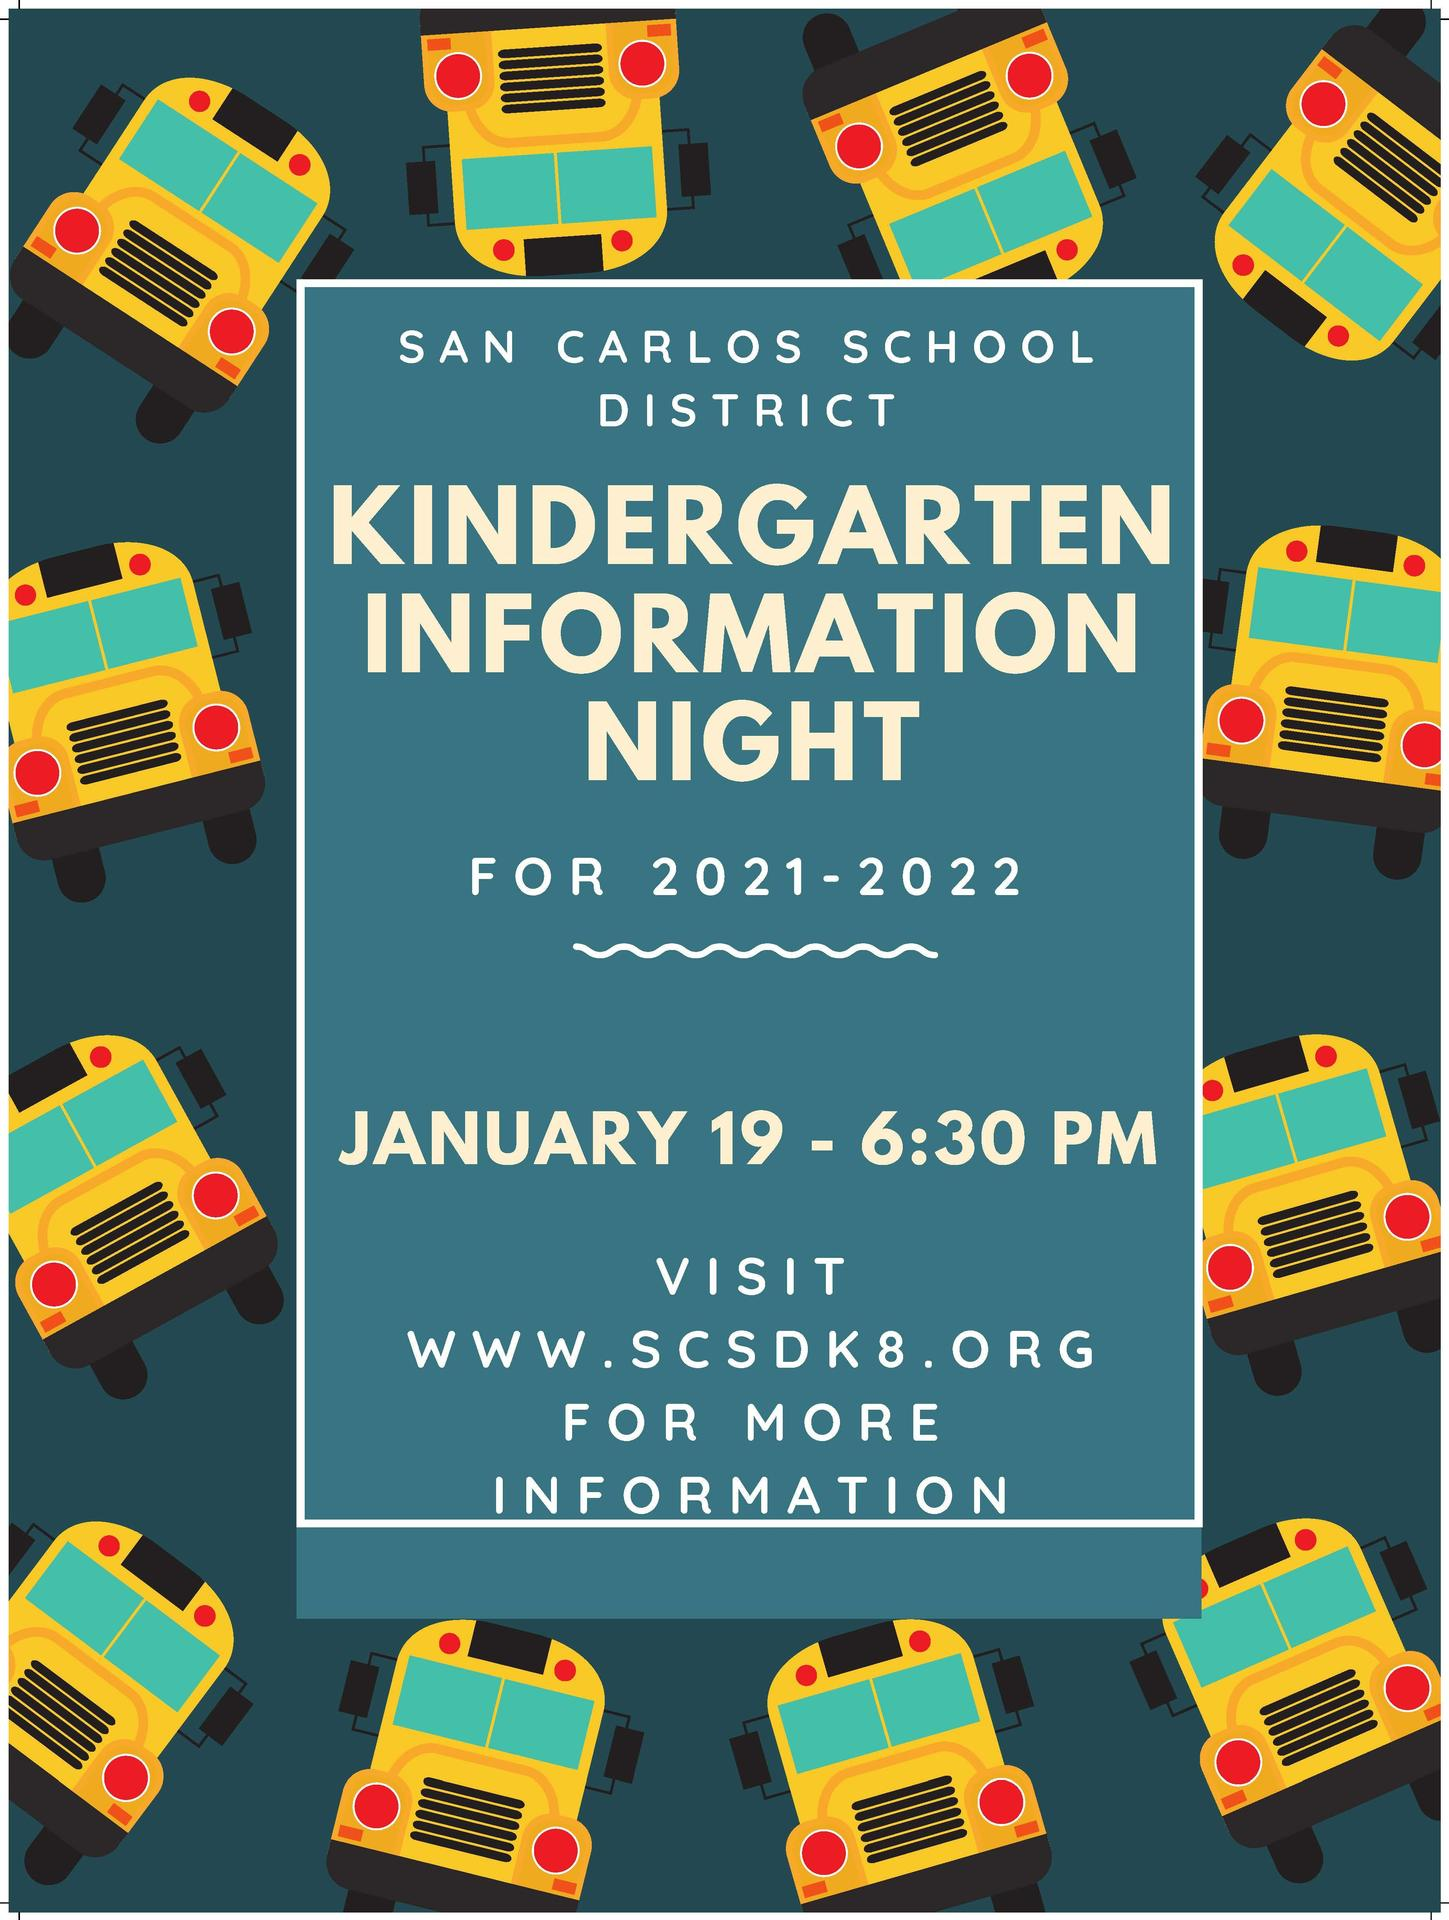 Kindergarten Information Night Image